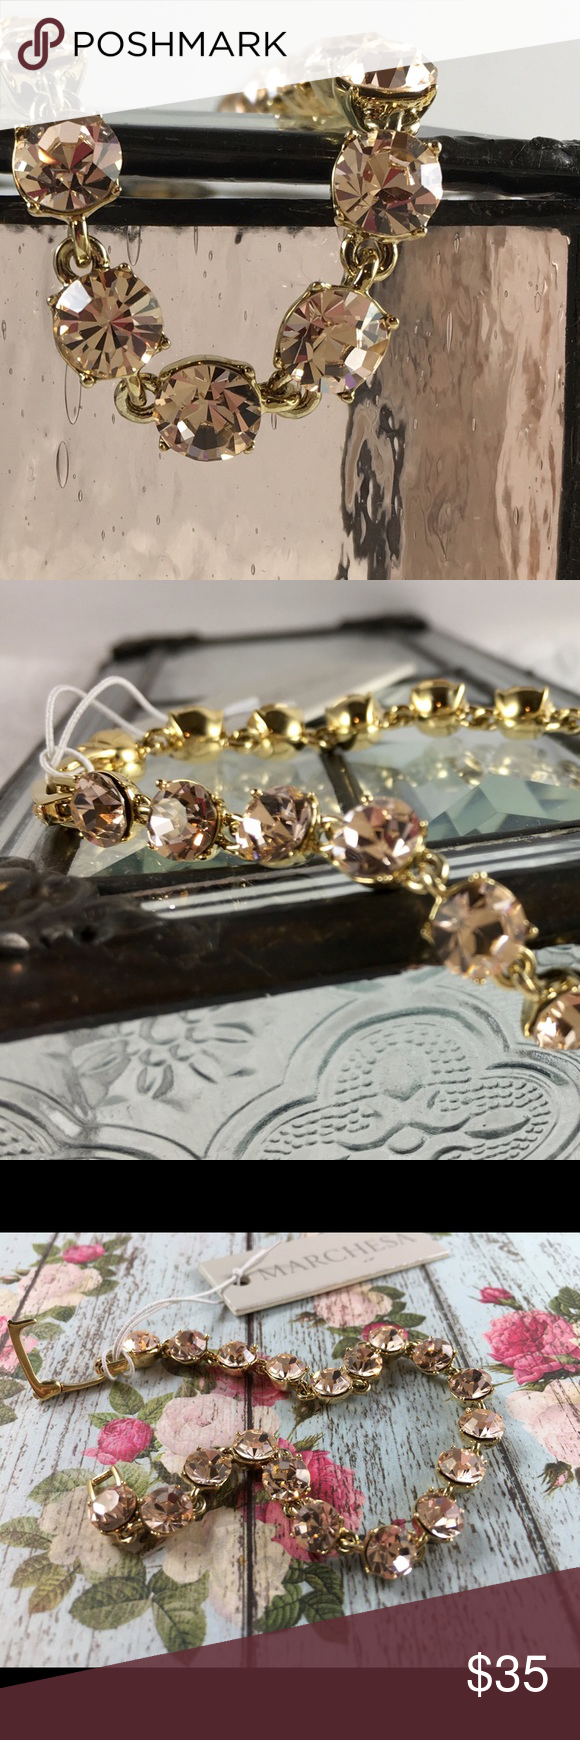 BLUSH COLORED Marchesa tennis bracelet Marchesa tennis bracelet. Prong set blush colored faceted stones, gold tone hardware. It is impossible to catch the insane amount of sparkle with the camera. It would be the PERFECT bracelet for a bride or as a guest at a spring wedding. ABSOLUTELY BEAUTIFUL! Marchesa Jewelry Bracelets